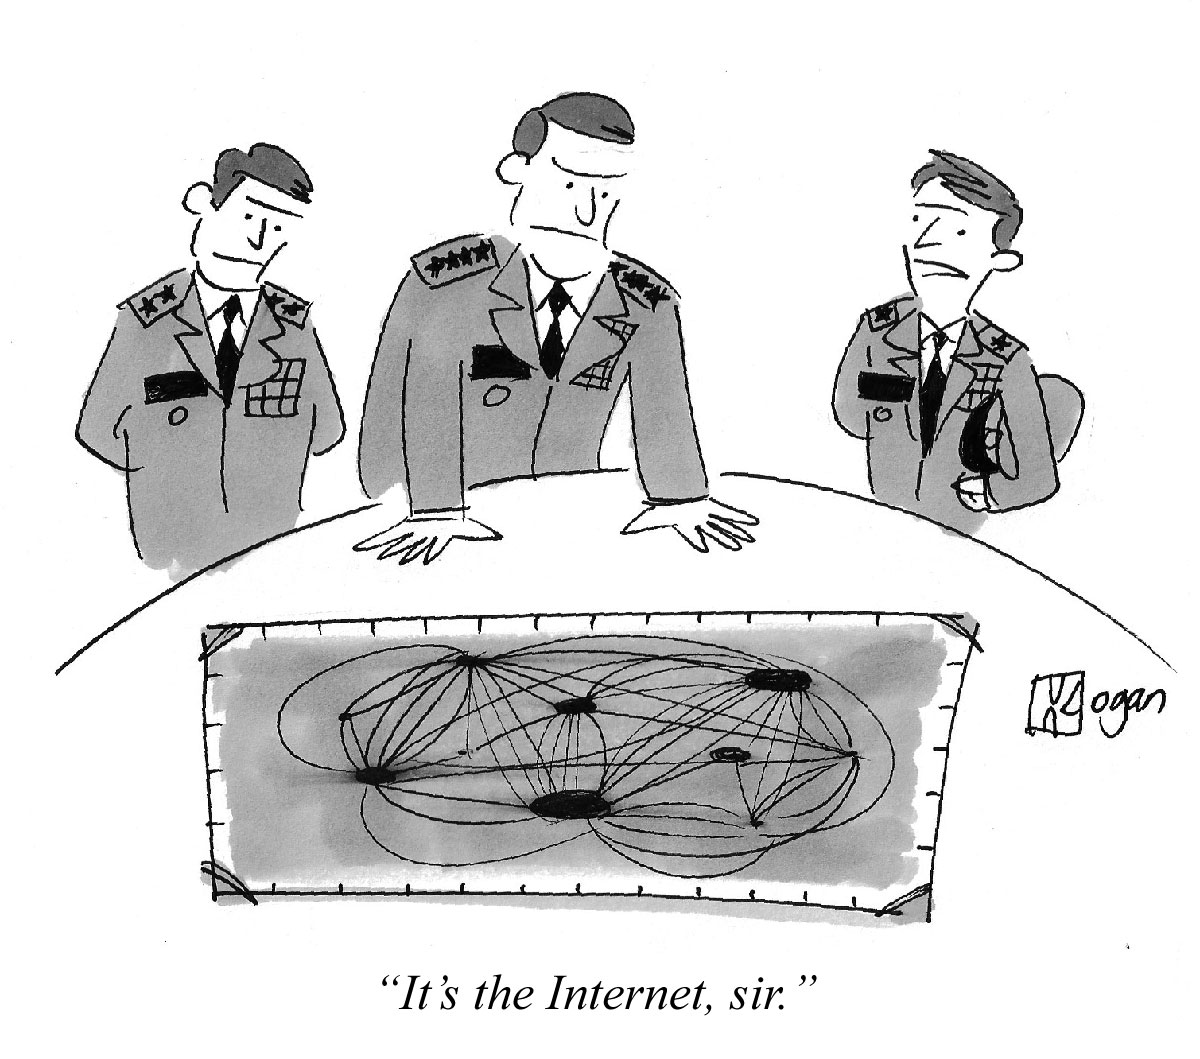 It's the Internet, sir.